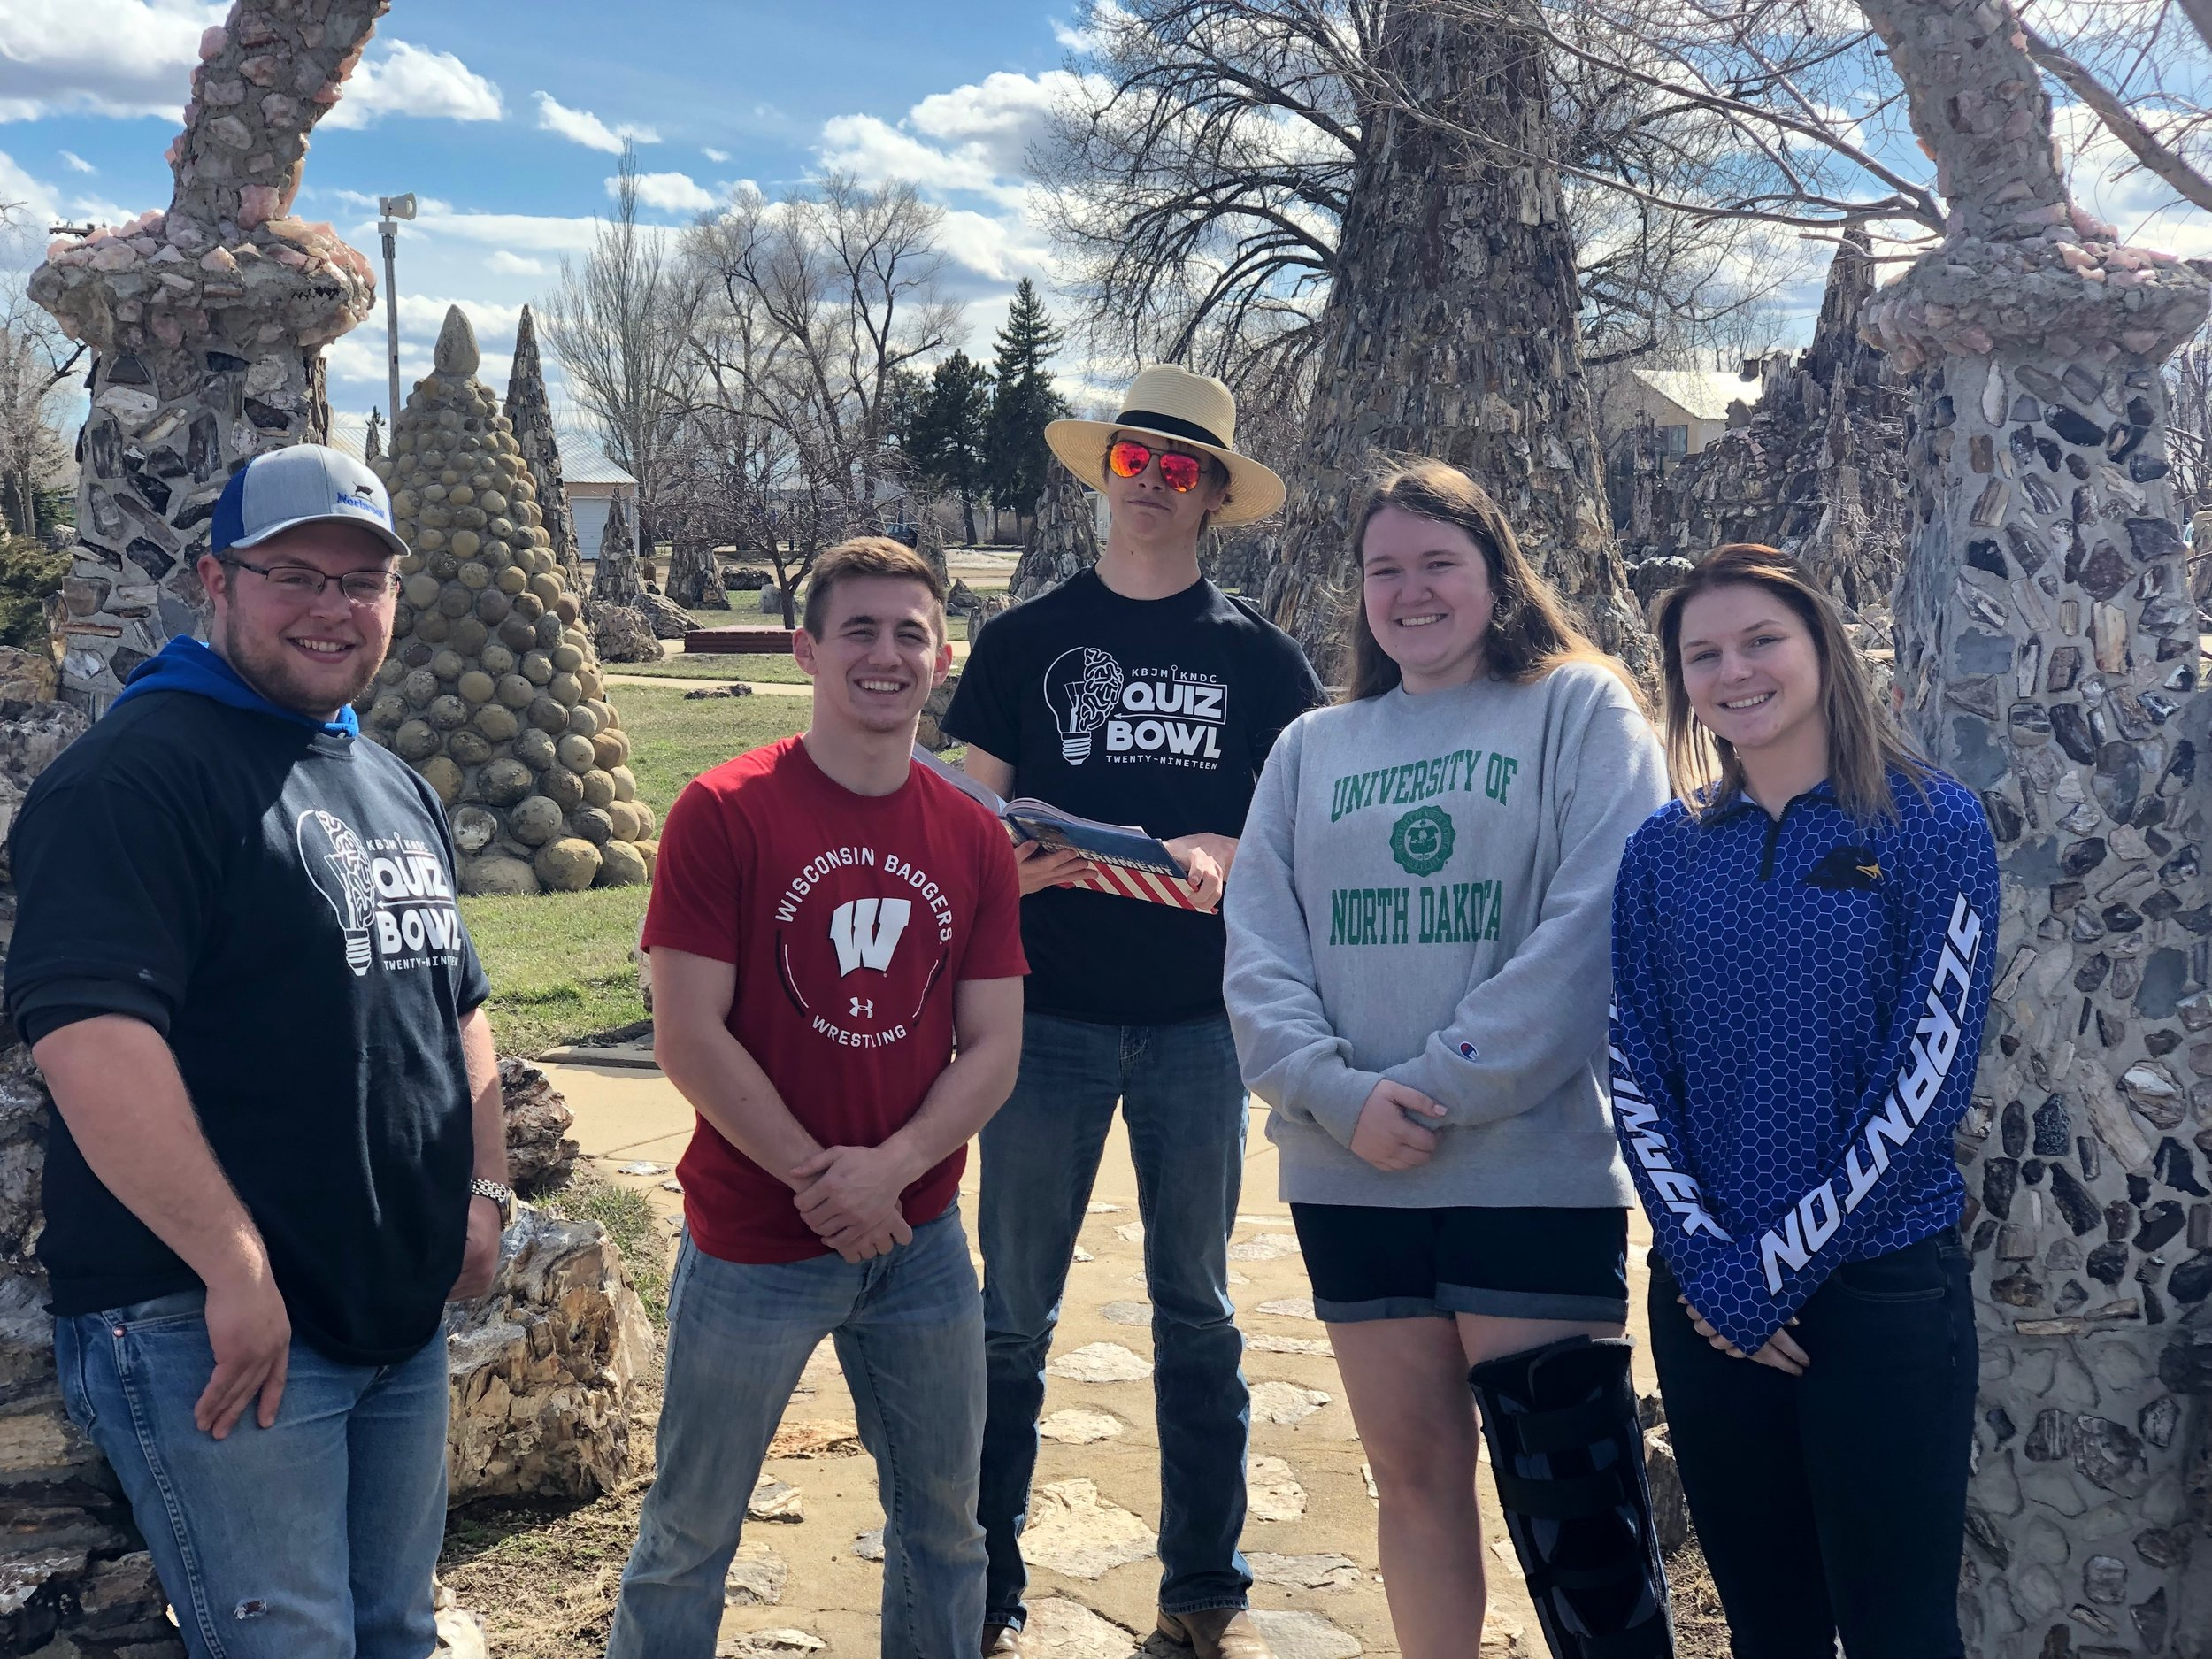 QUIZ BOWL CHAMPS - 2019 - Seniors Mack Buckmier, Kyle Burwick, and Zach Rickersten were accompanied by juniors Emily Shirek and Alyssa Andress to Lemmon on the morning of April 15th. It was there they proceeded to go 6-1 against towns from around the area to come out on top at the KNDC/KBJM Quiz Bowl competition for 2019. This was the first time Hettinger has ever won the competition.